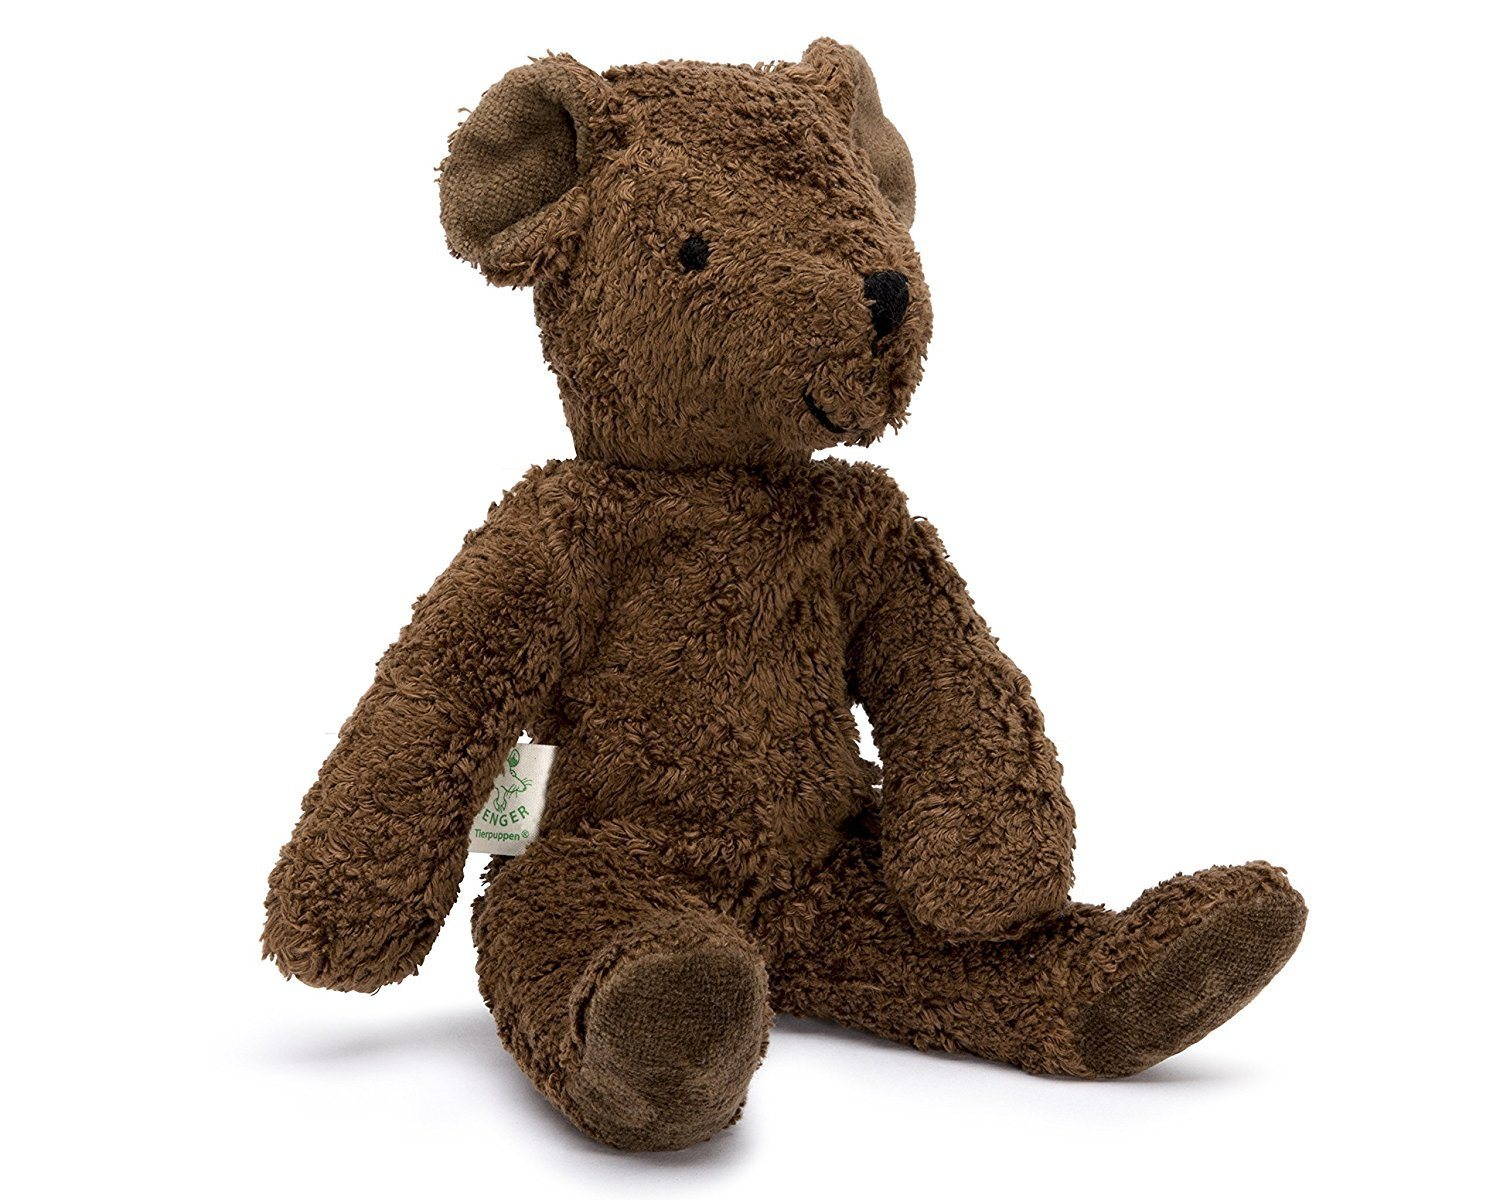 Senger Tierpuppen Brown Teddy Bear - WoodenToys.com